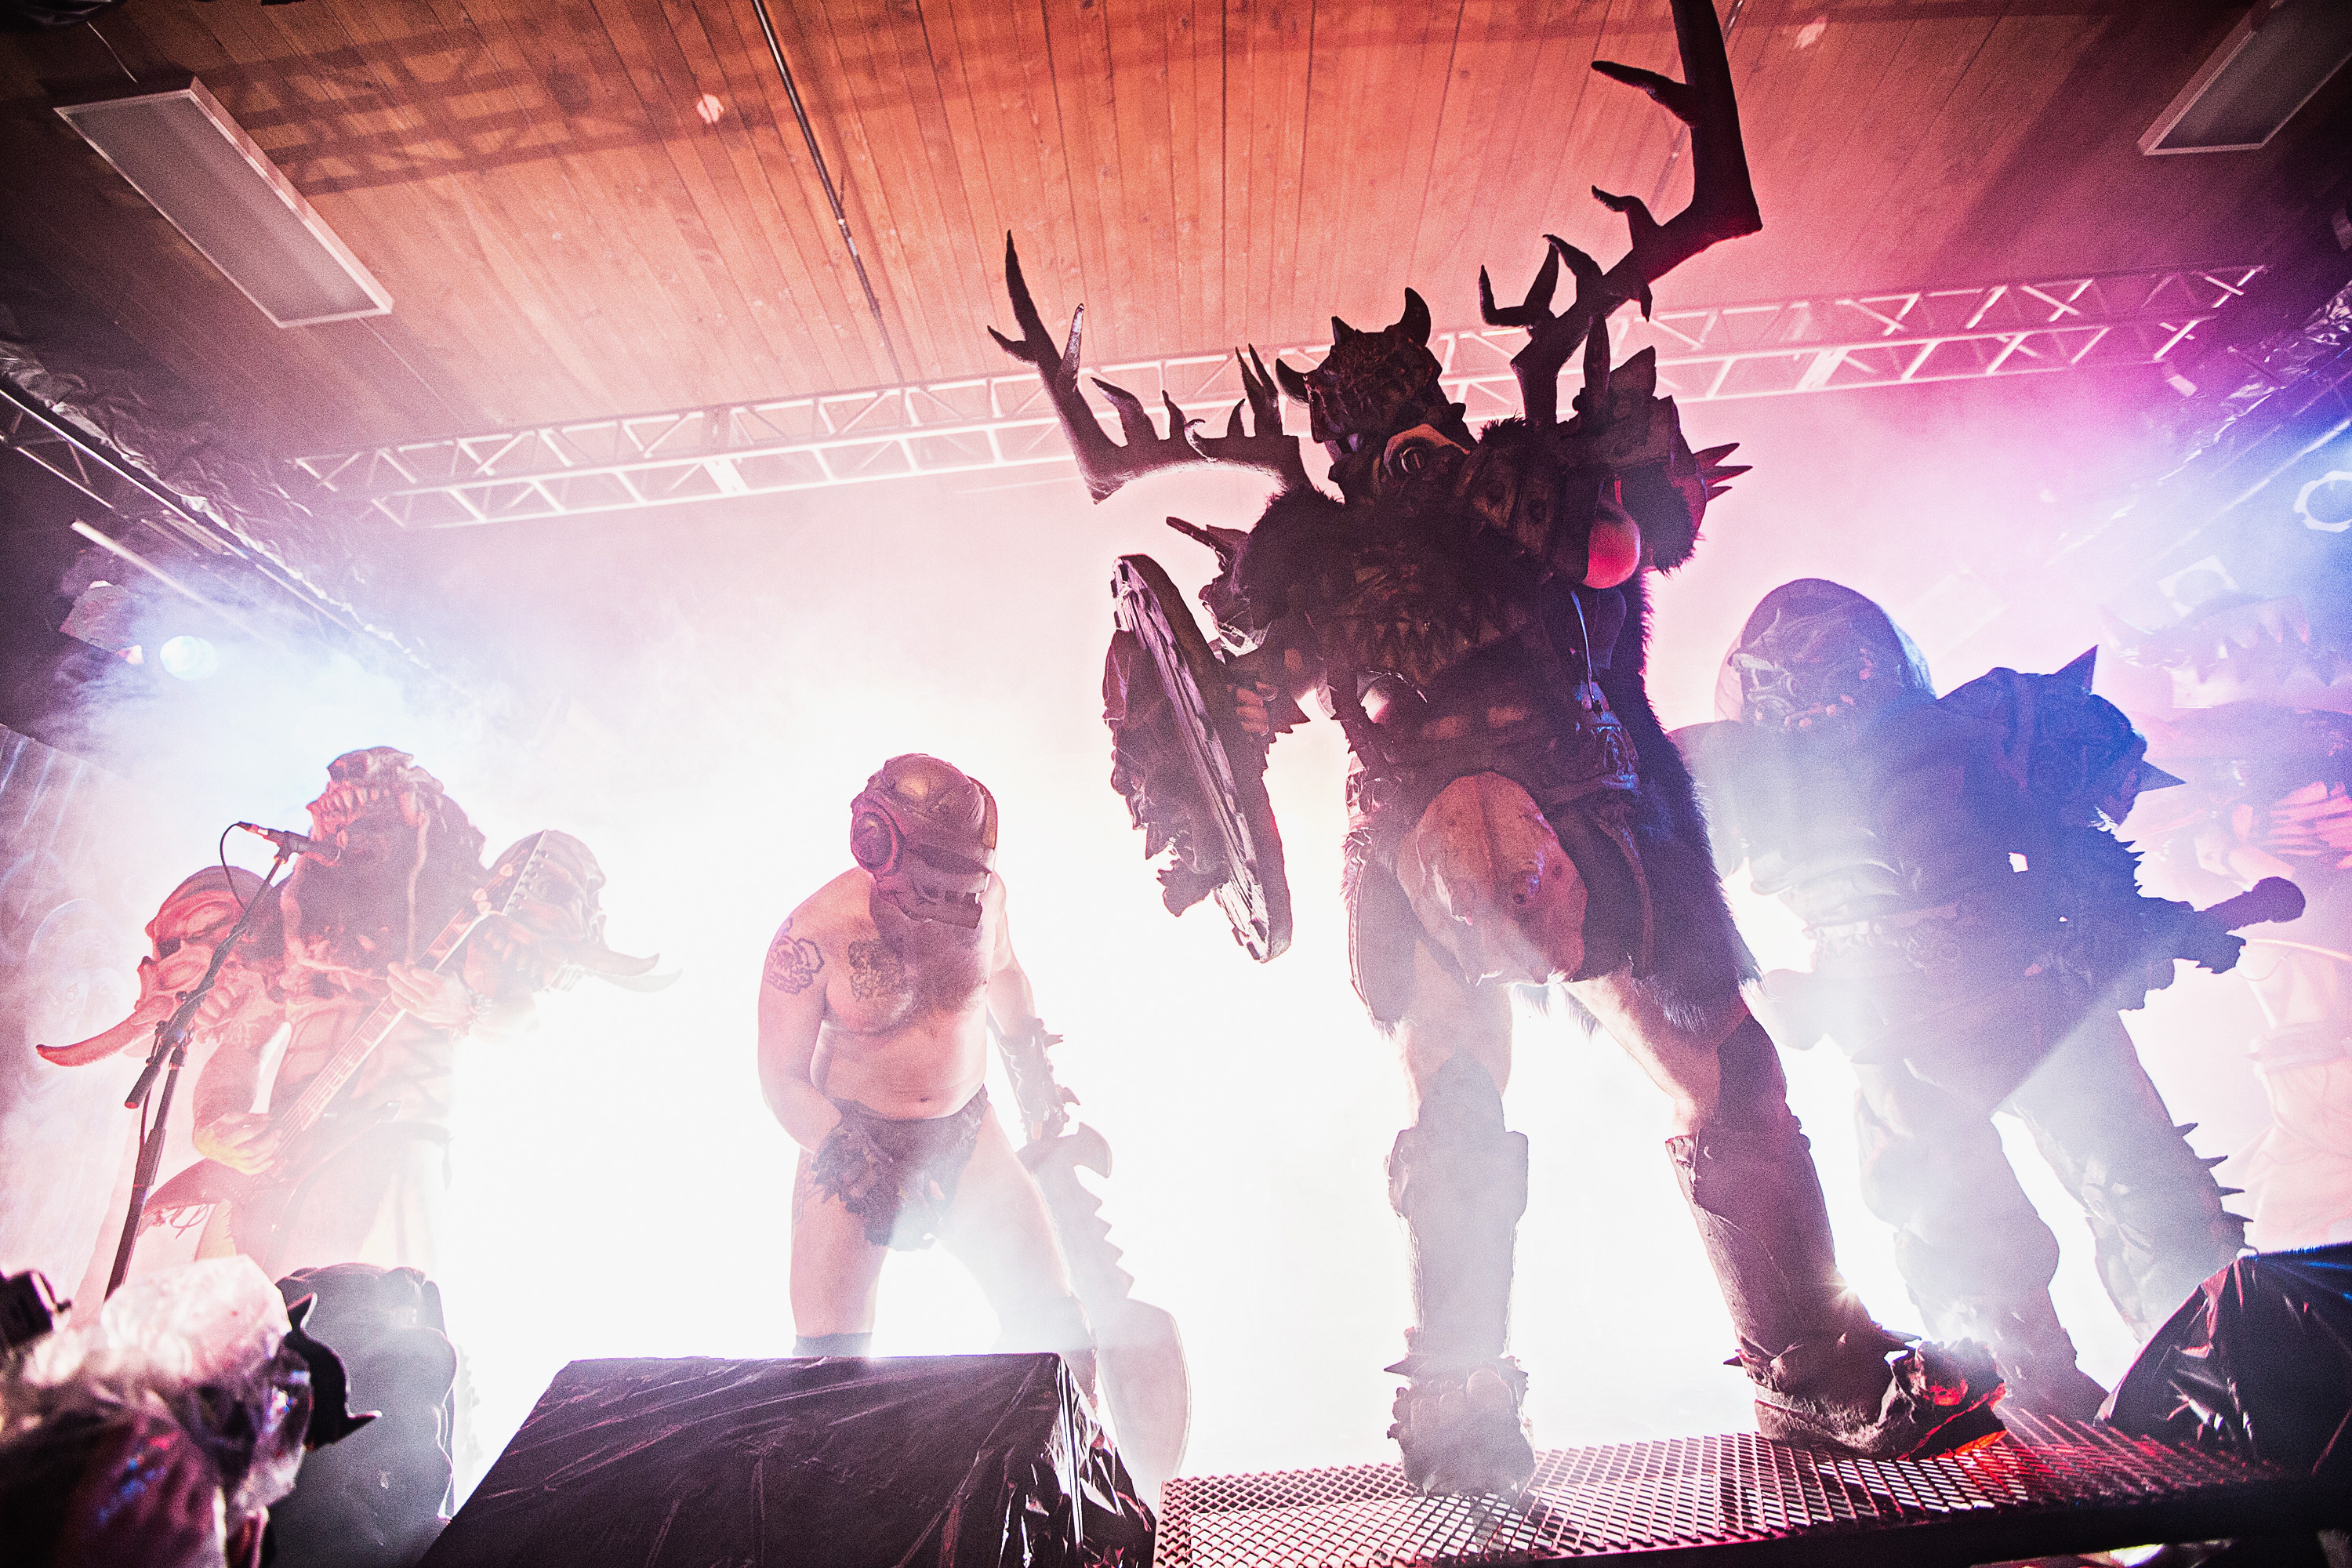 Gwar to Tell Band's History in 'Let There Be Gwar' Book